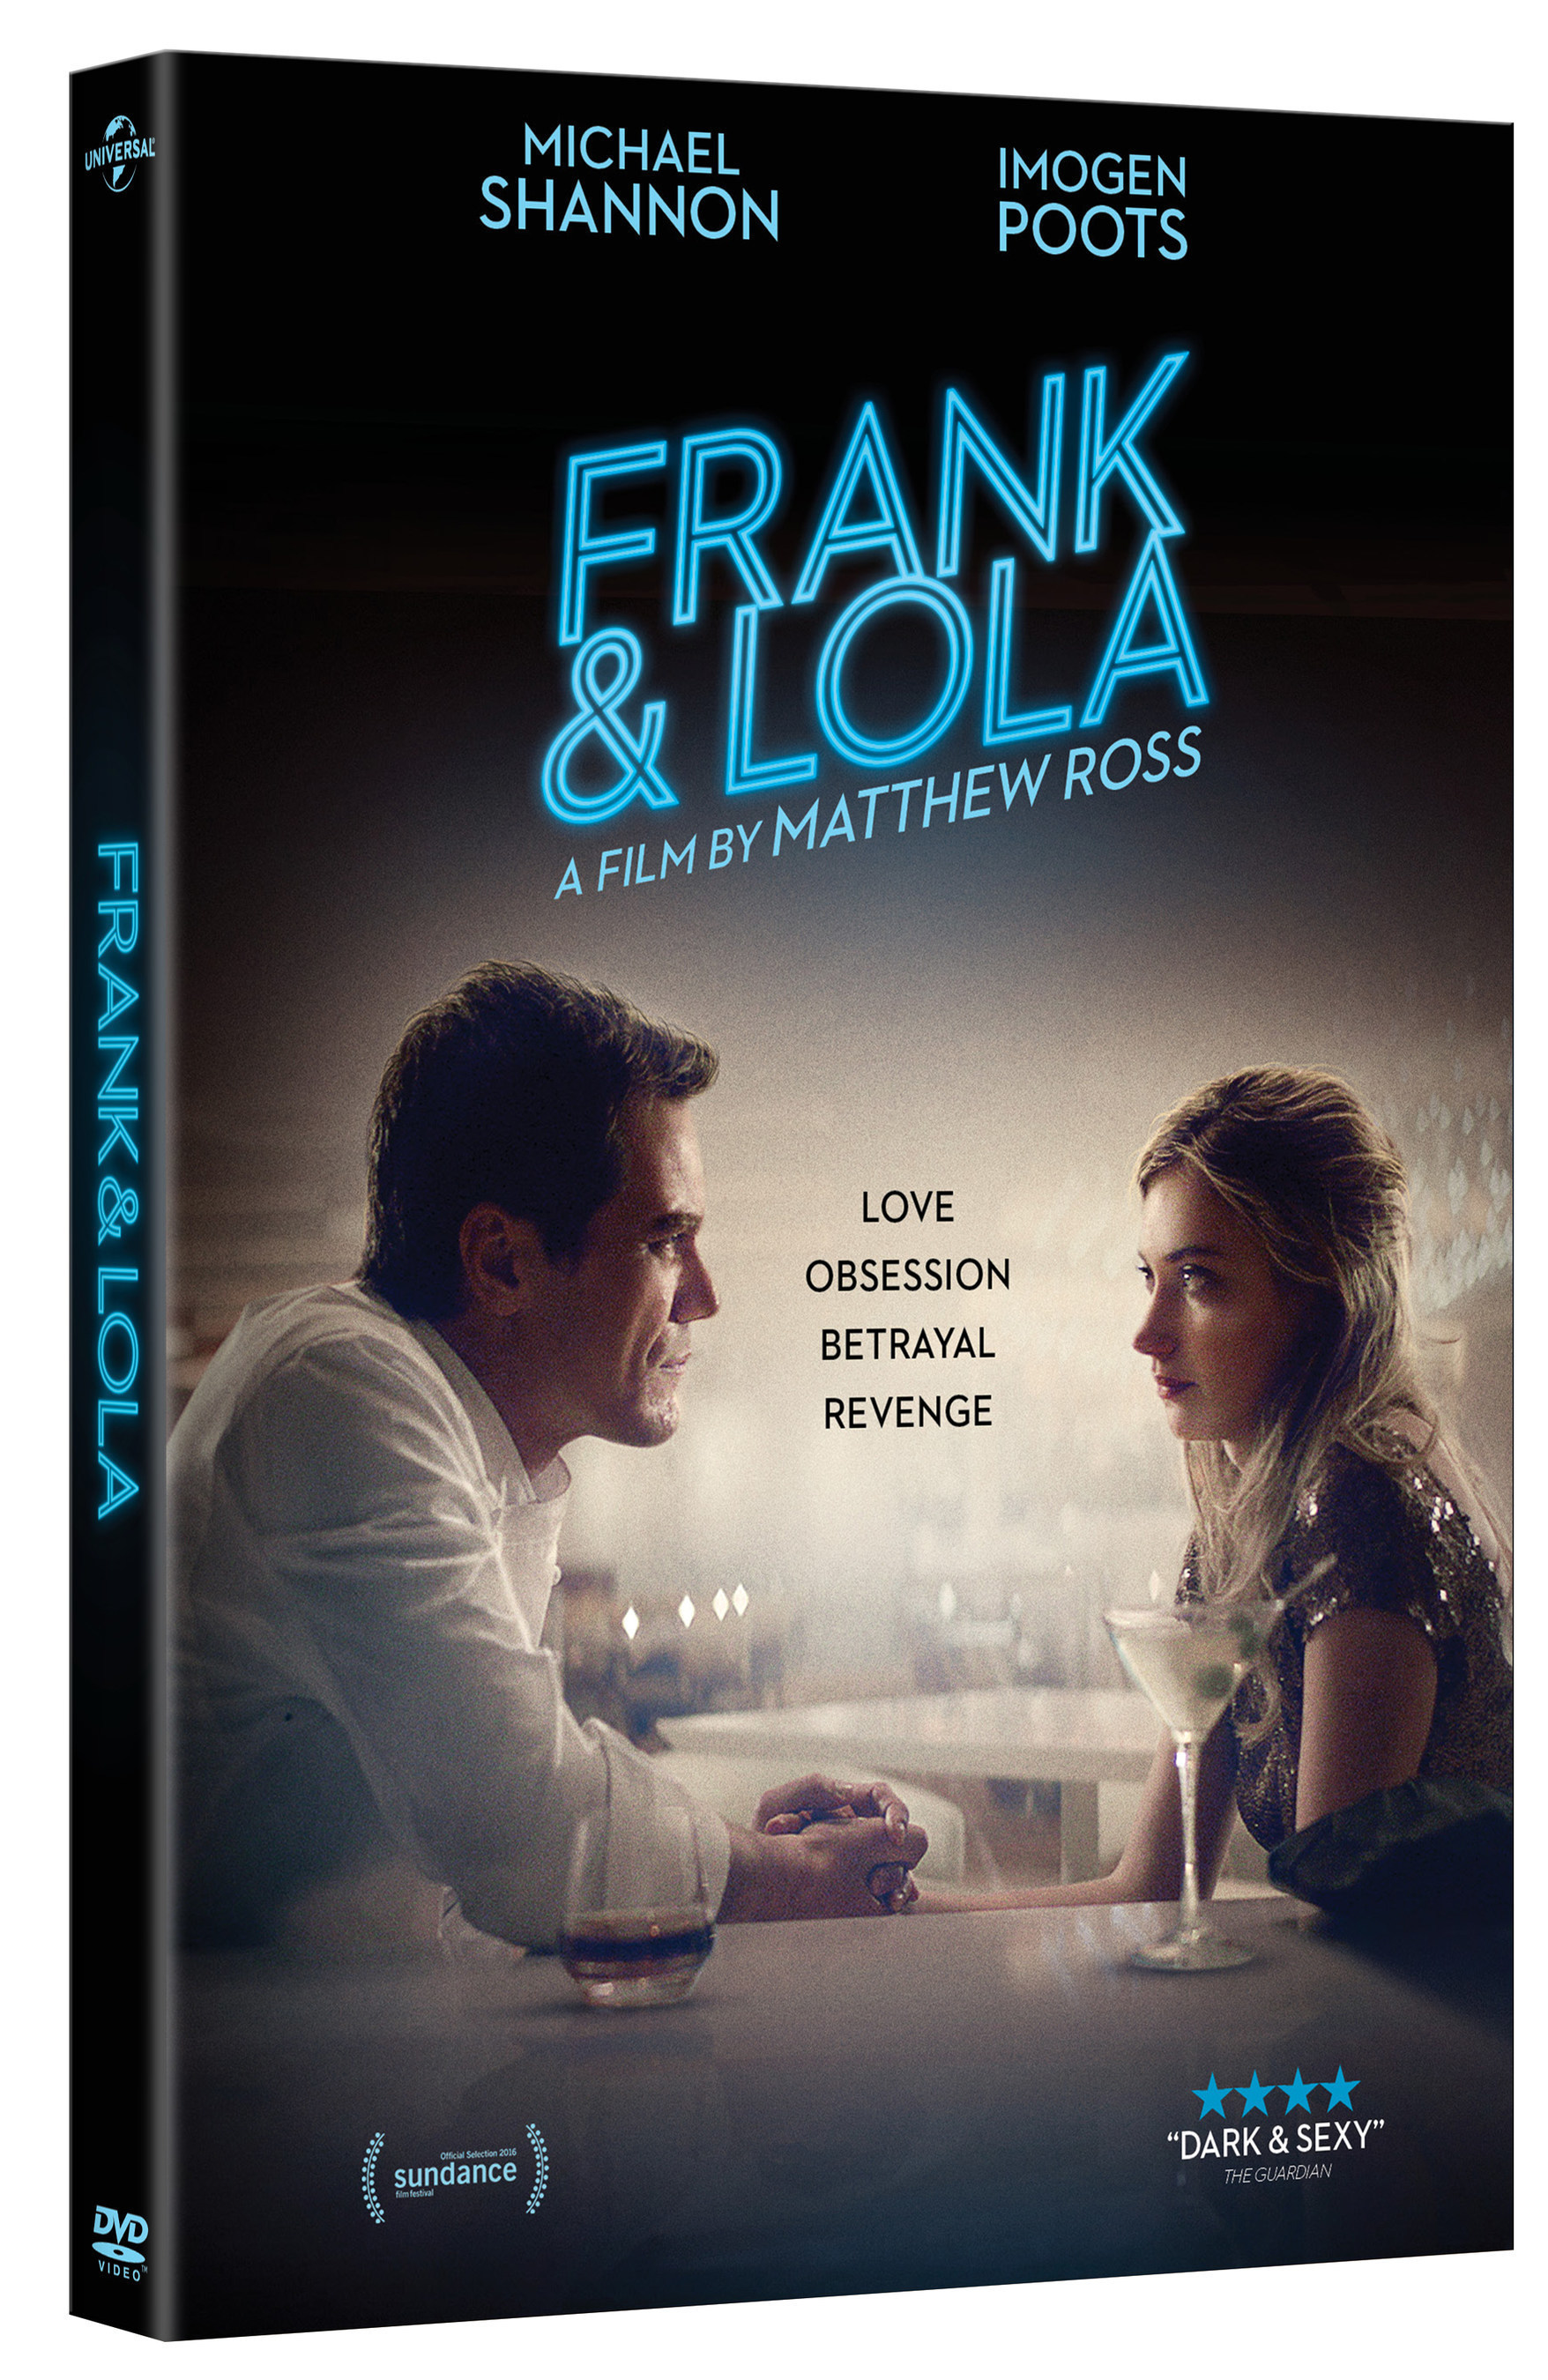 From Universal Pictures Home Entertainment: Michael Shannon And Imogen Poots Star In The Seductive Love Story: 'Frank & Lola'